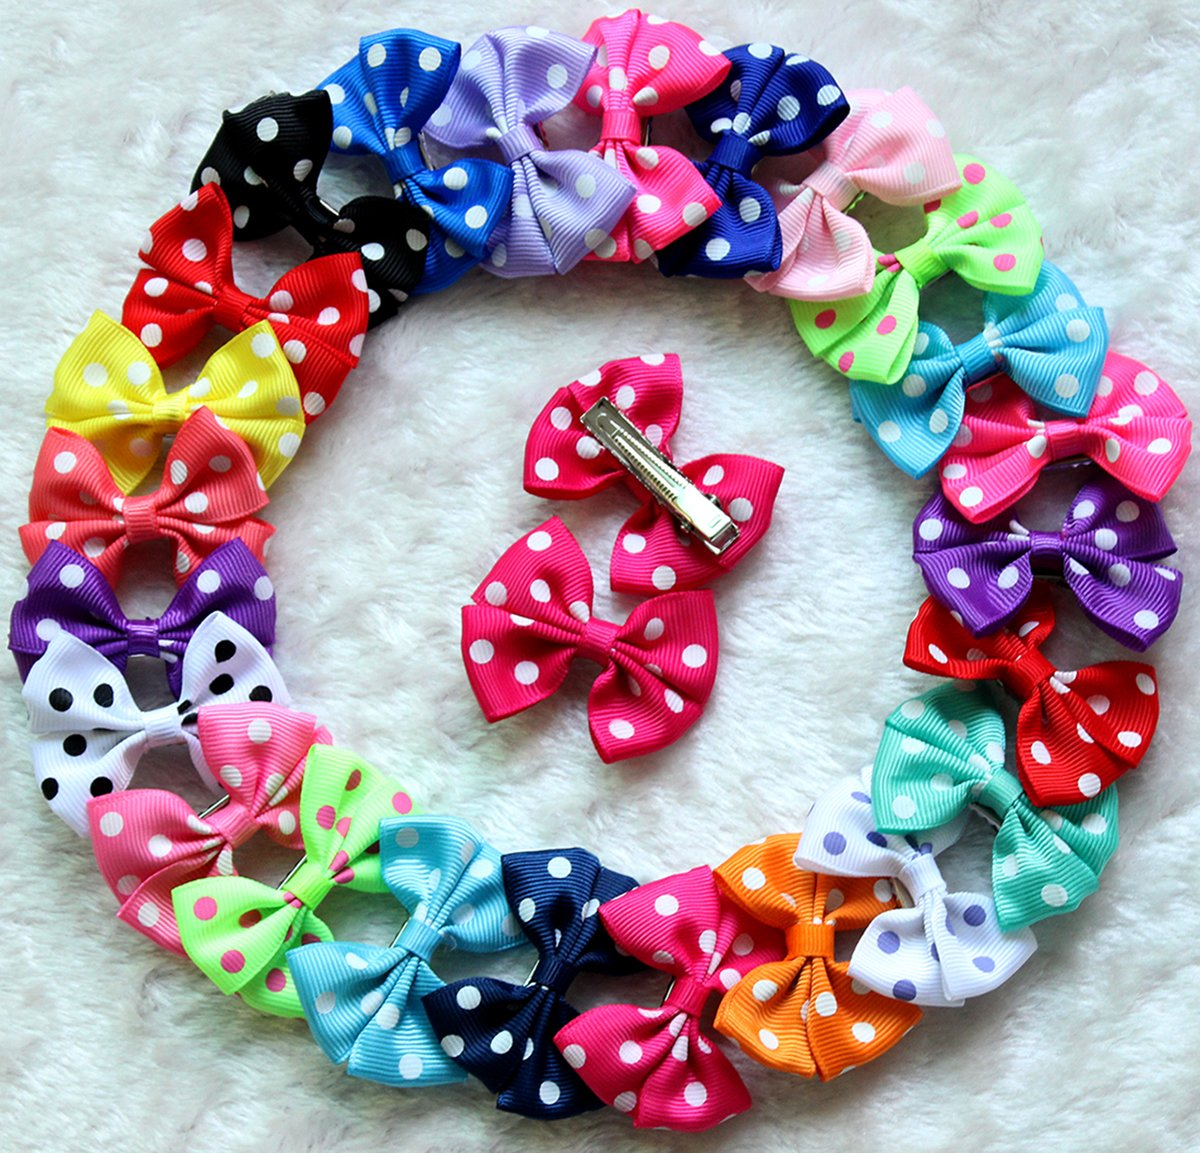 Yagopet 30pcs/15pairs Dog Hair Clips 2 inches Bowknot Bows Dog Topknot Bows Polka Dots Cute Dog Pet Hair Clips Cute Dog Hair Bows Pet Grooming Products Mix Colors Dog Hair Bows Topknot Alloy Clips